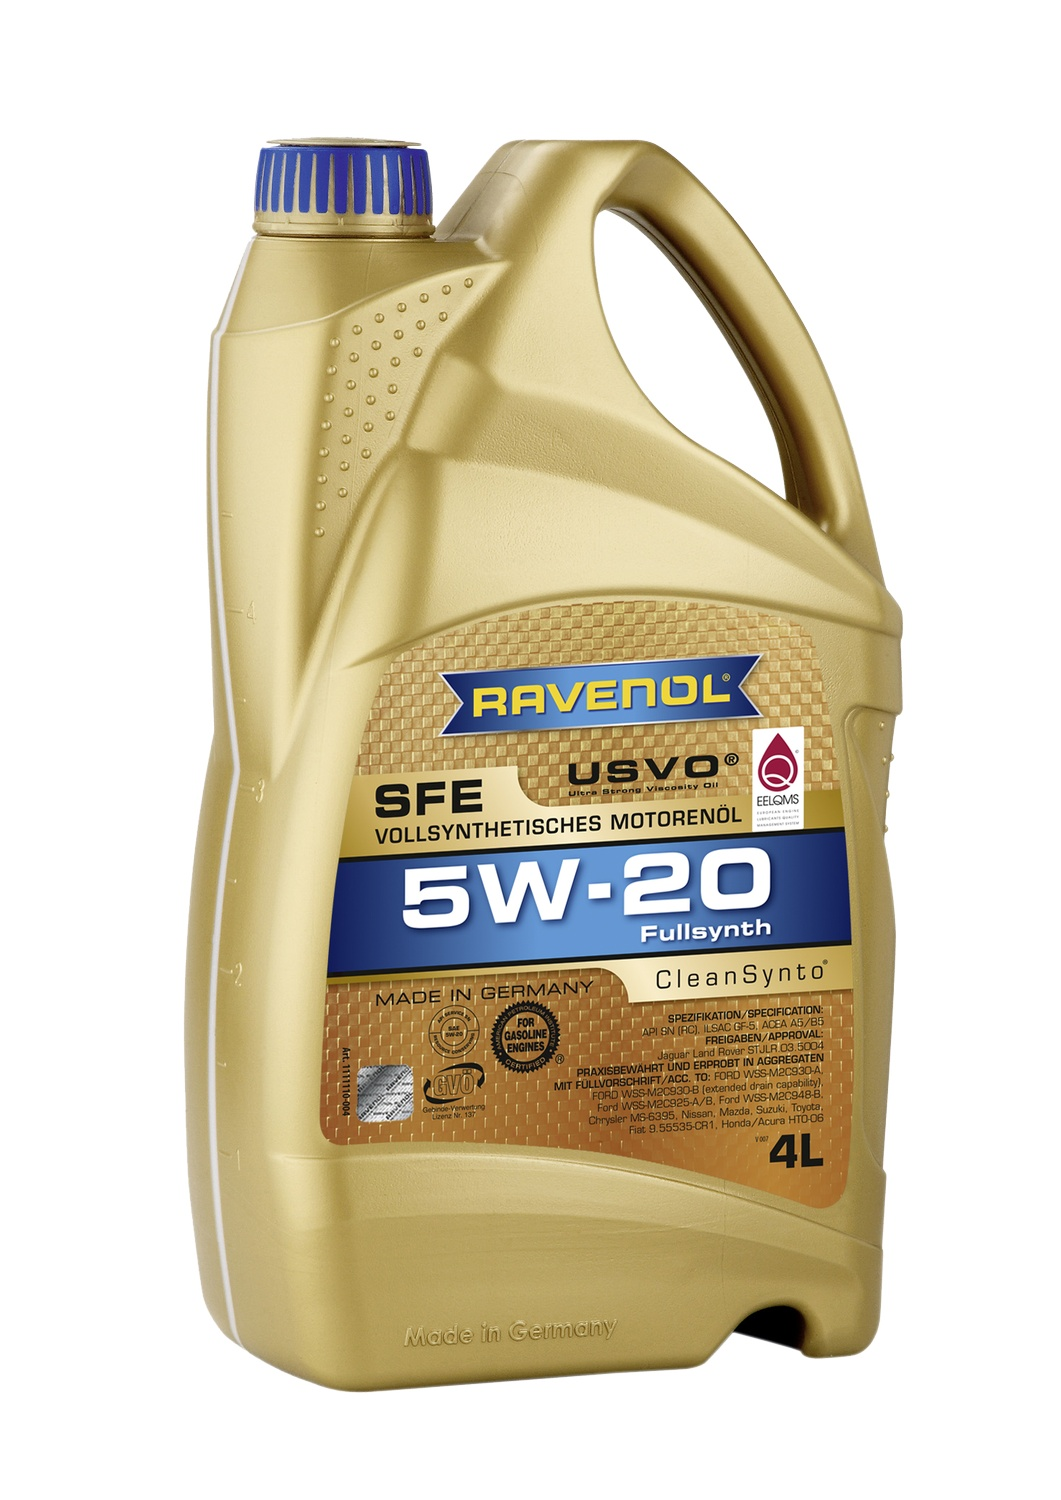 Super Fuel Economy SFE 5W-20